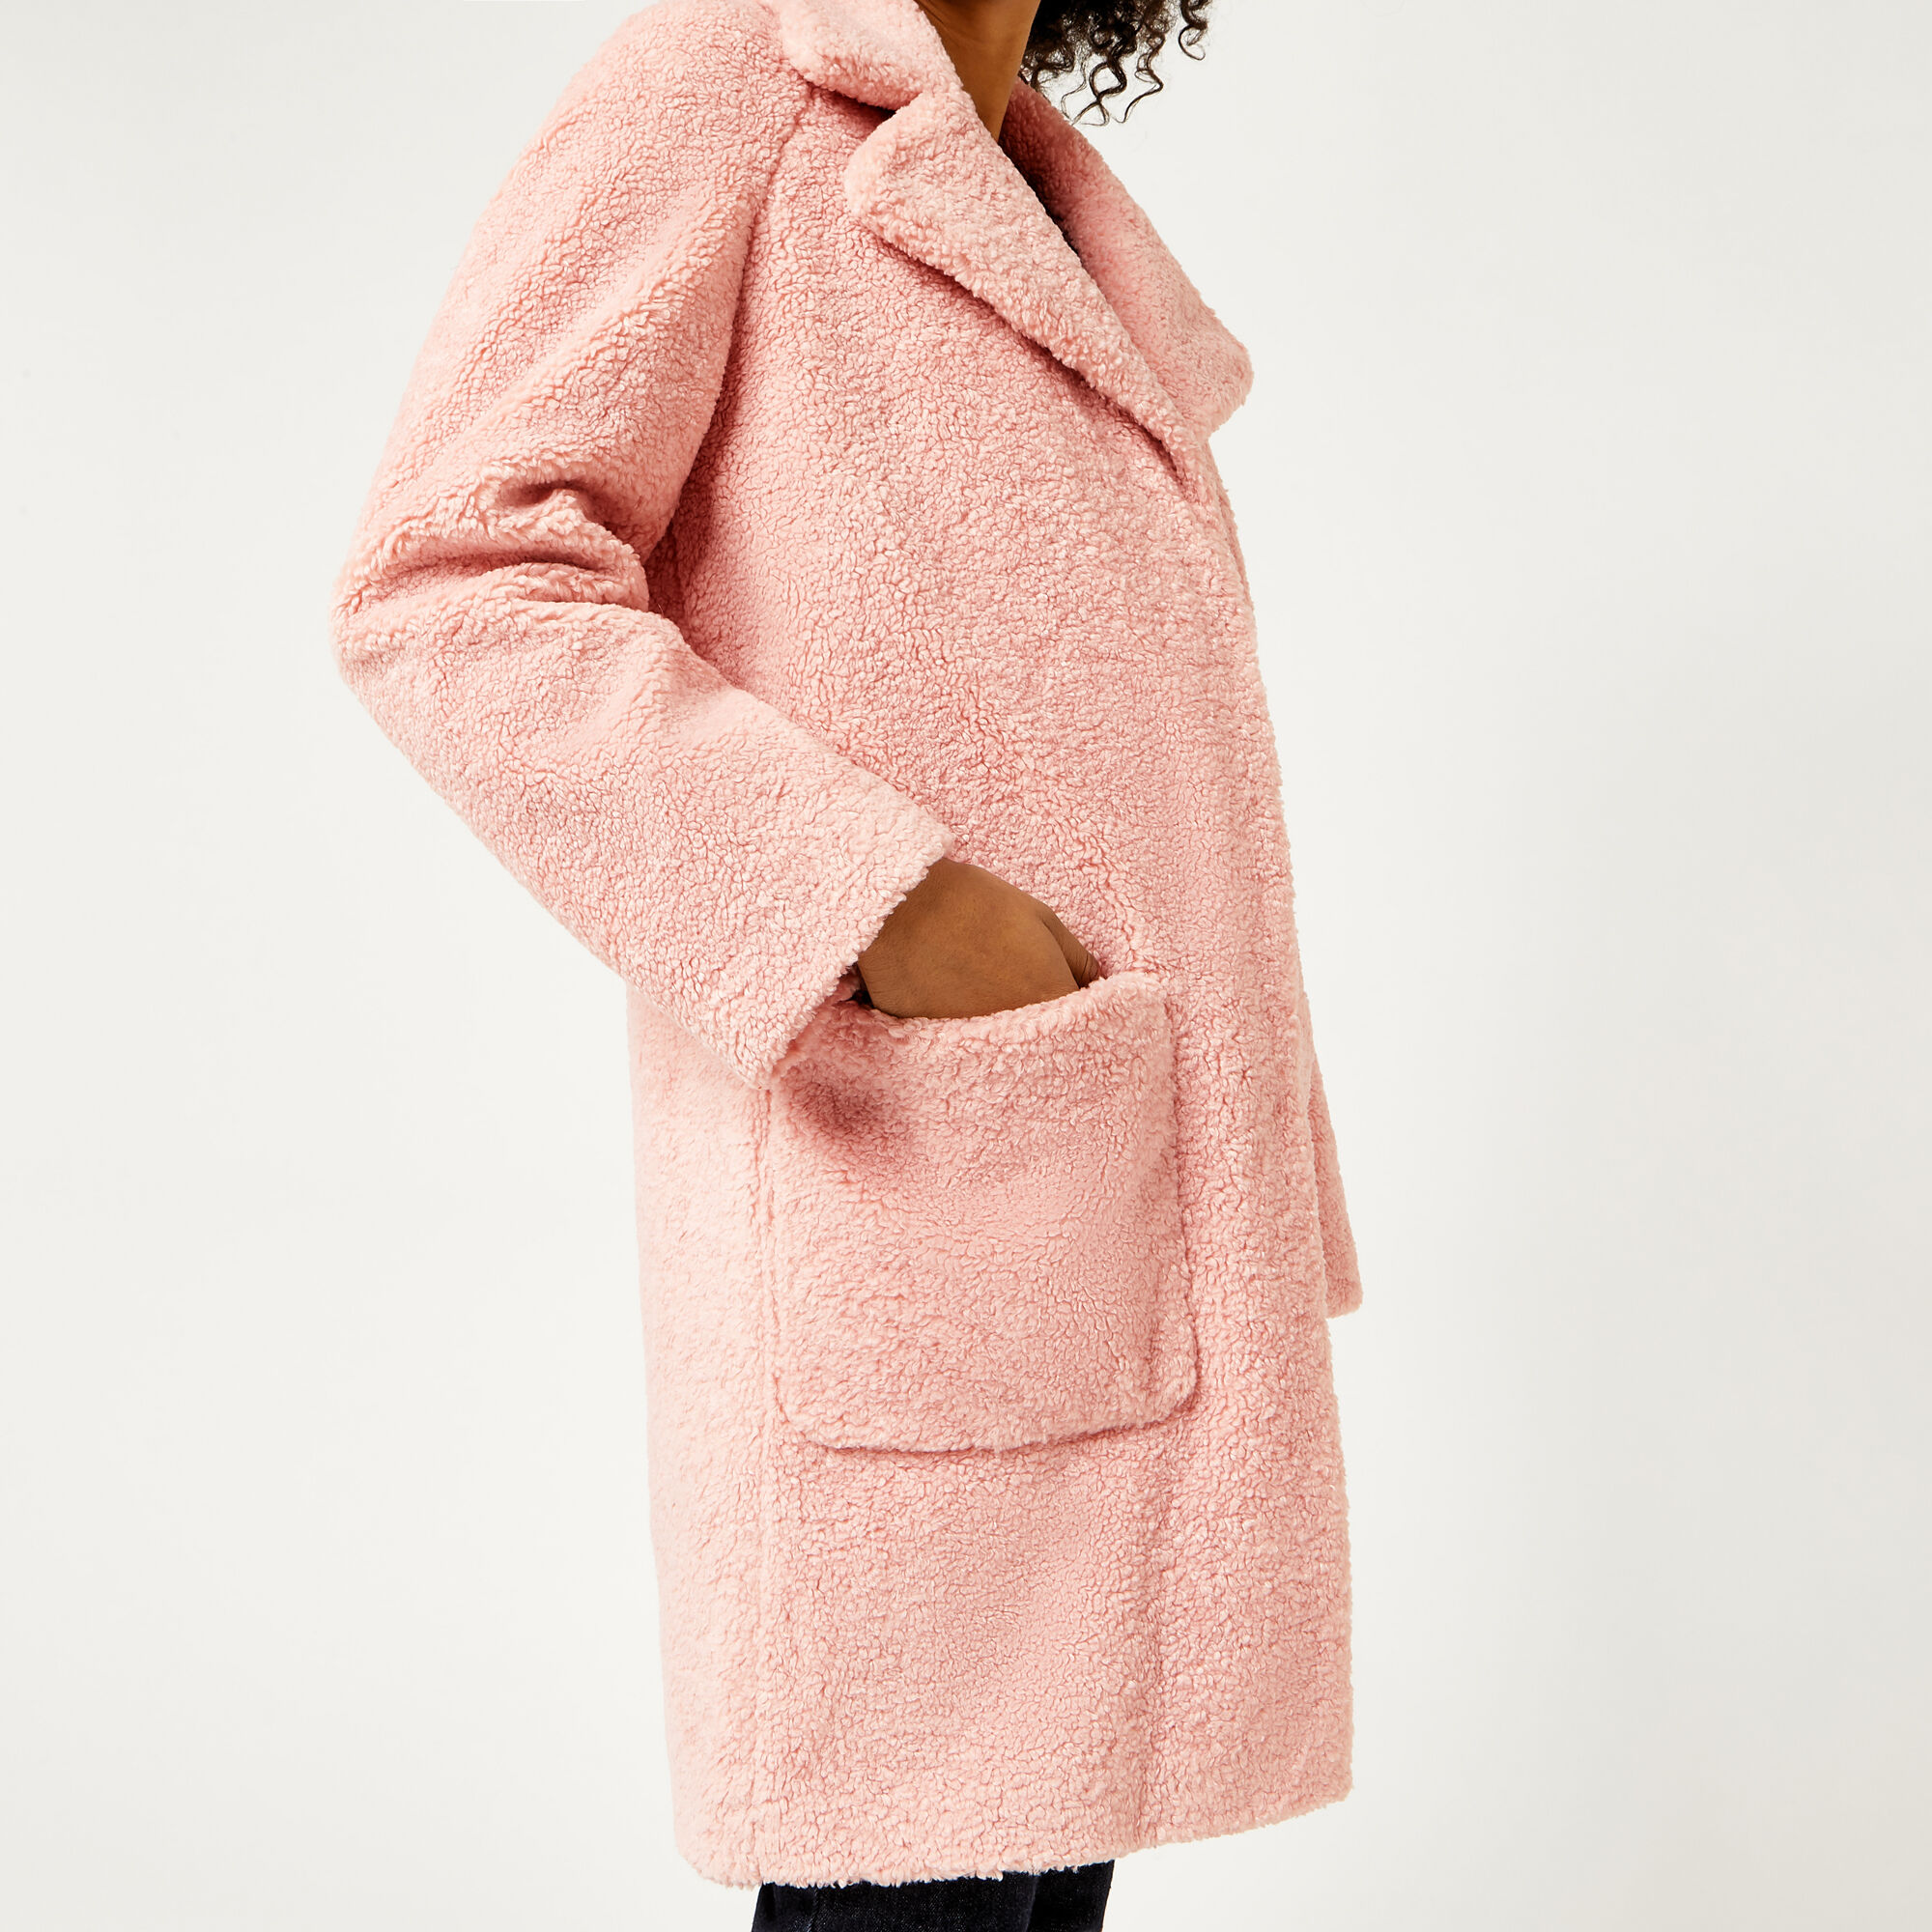 Warehouse, Teddy Faux Fur Coat Light Pink 1